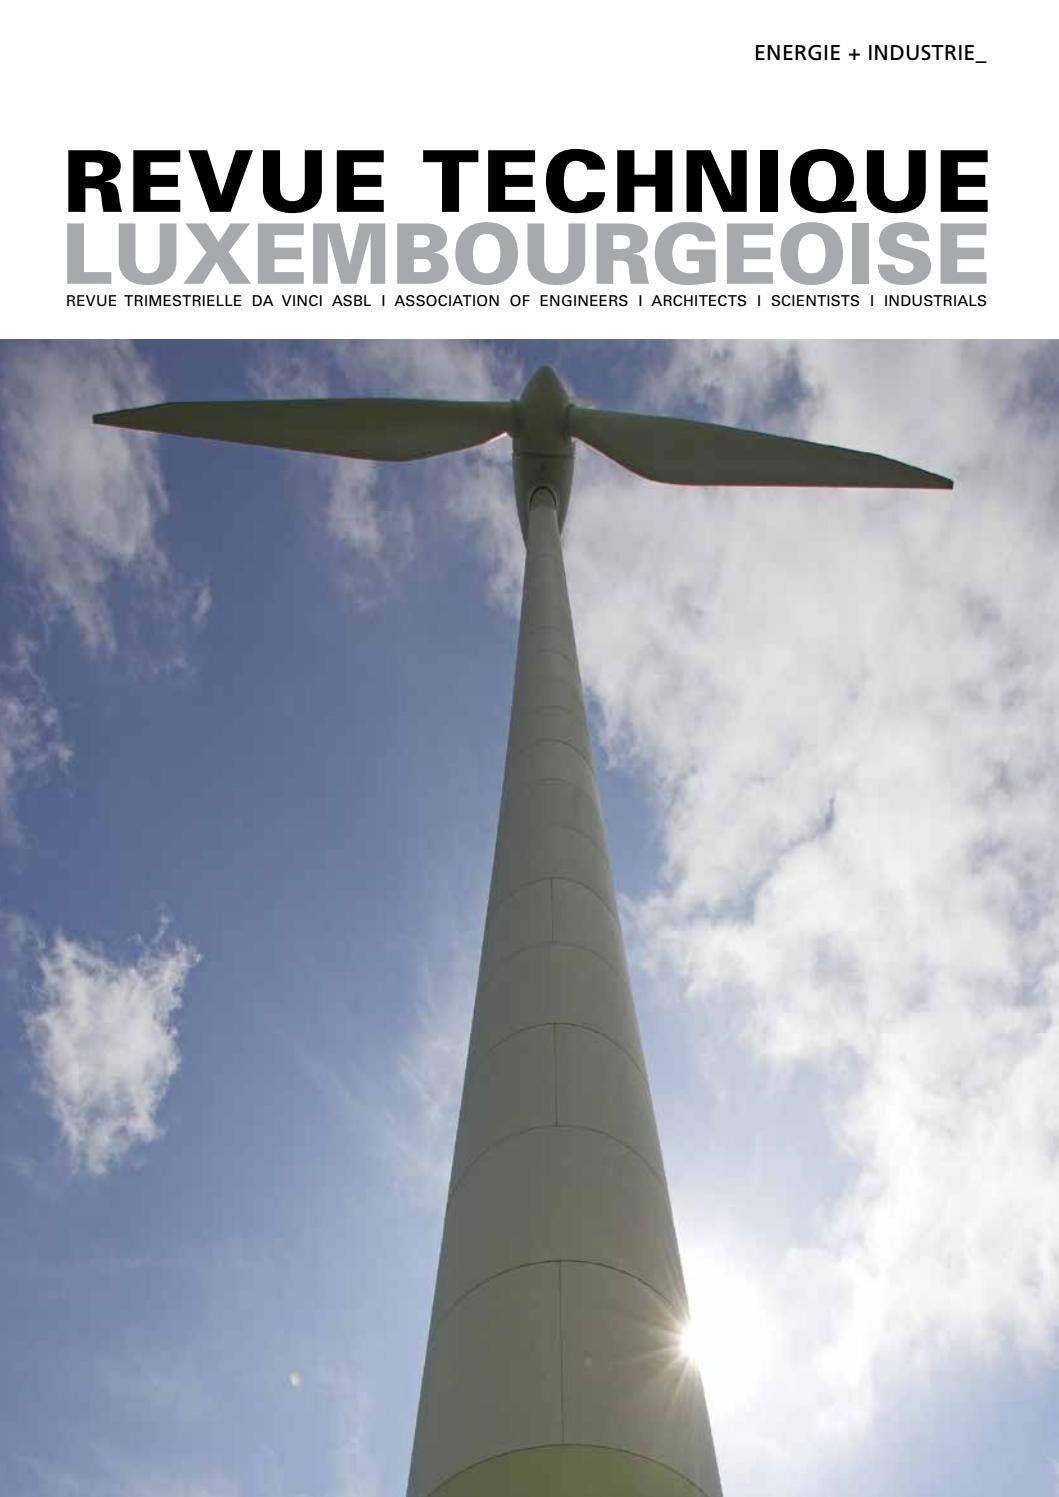 Rt 2016 04 by Revue Technique Luxembourgeoise - issuu